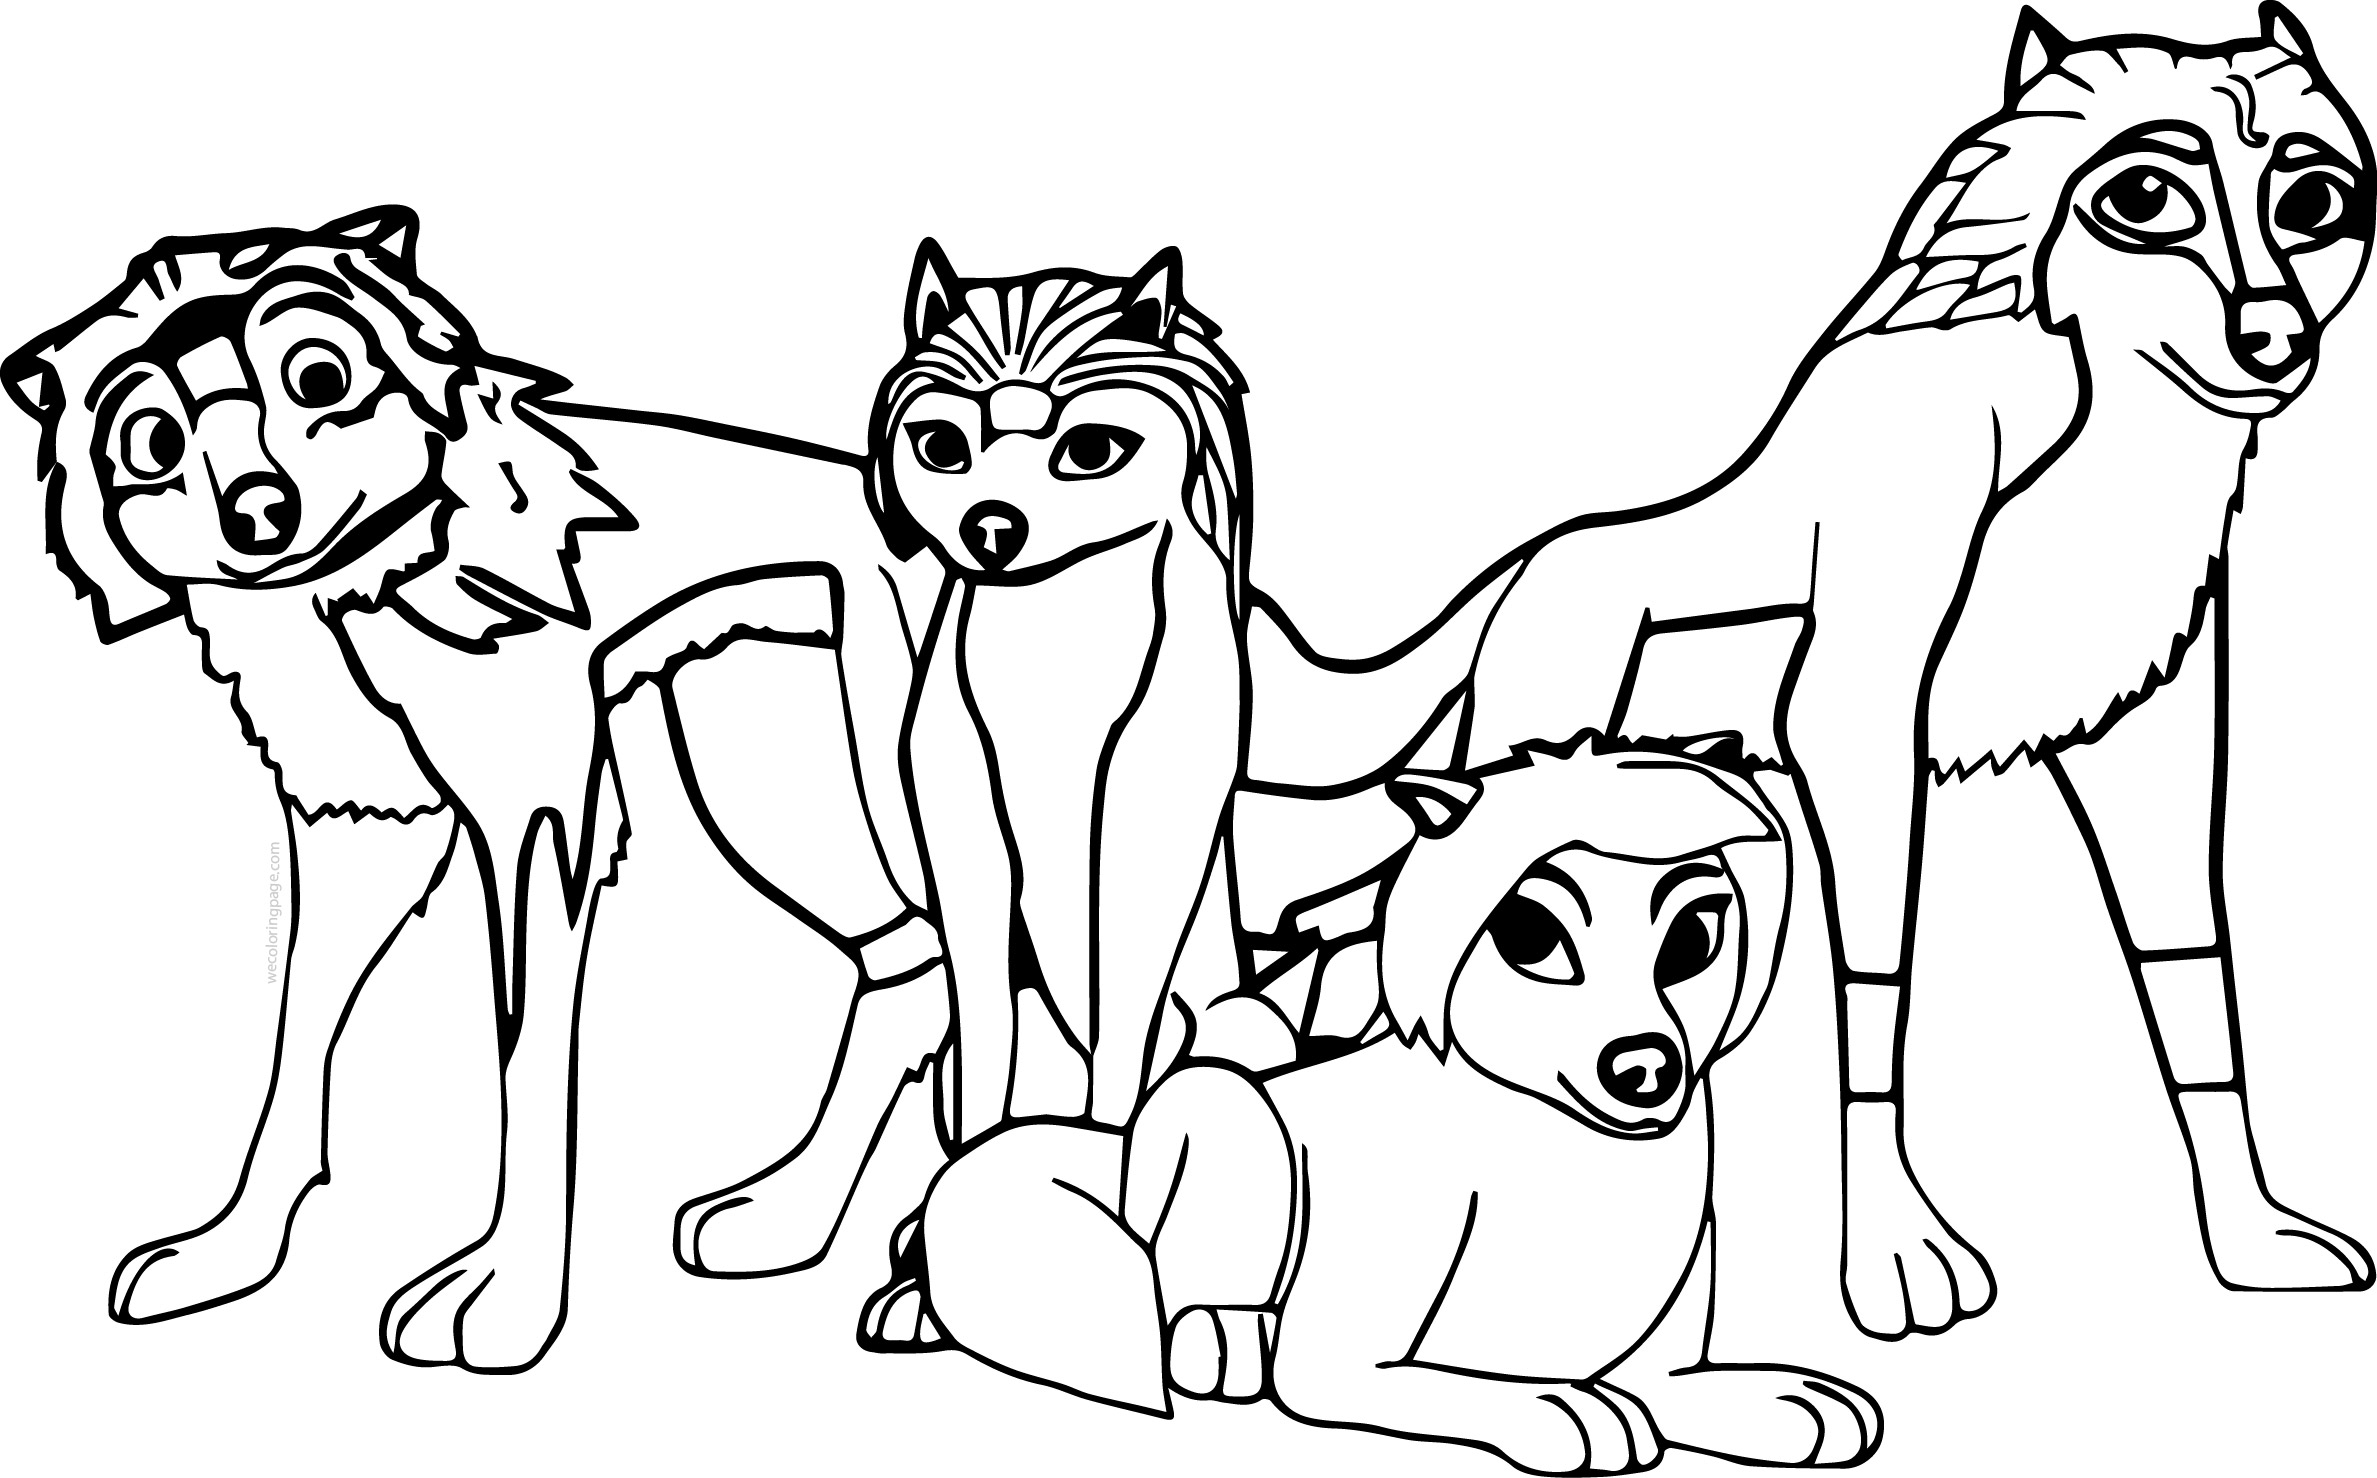 alpha and omega top 4 characters coloring page wecoloringpage